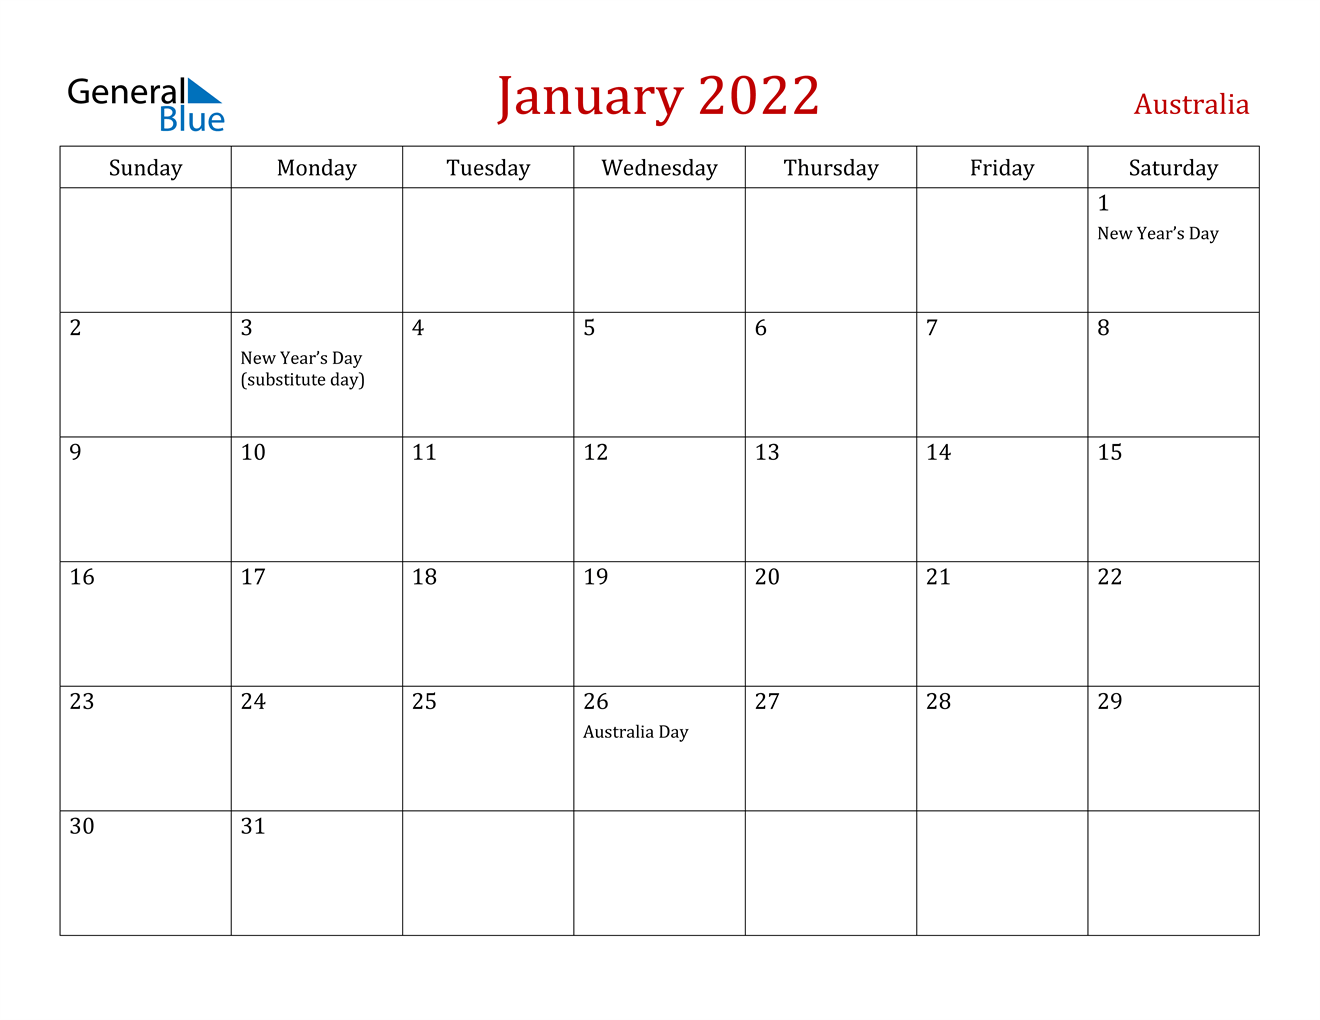 Remembering bill due dates is easy with a system for noting what needs to be paid and whether you've done with these free printable bill calendars. January 2022 Calendar - Australia